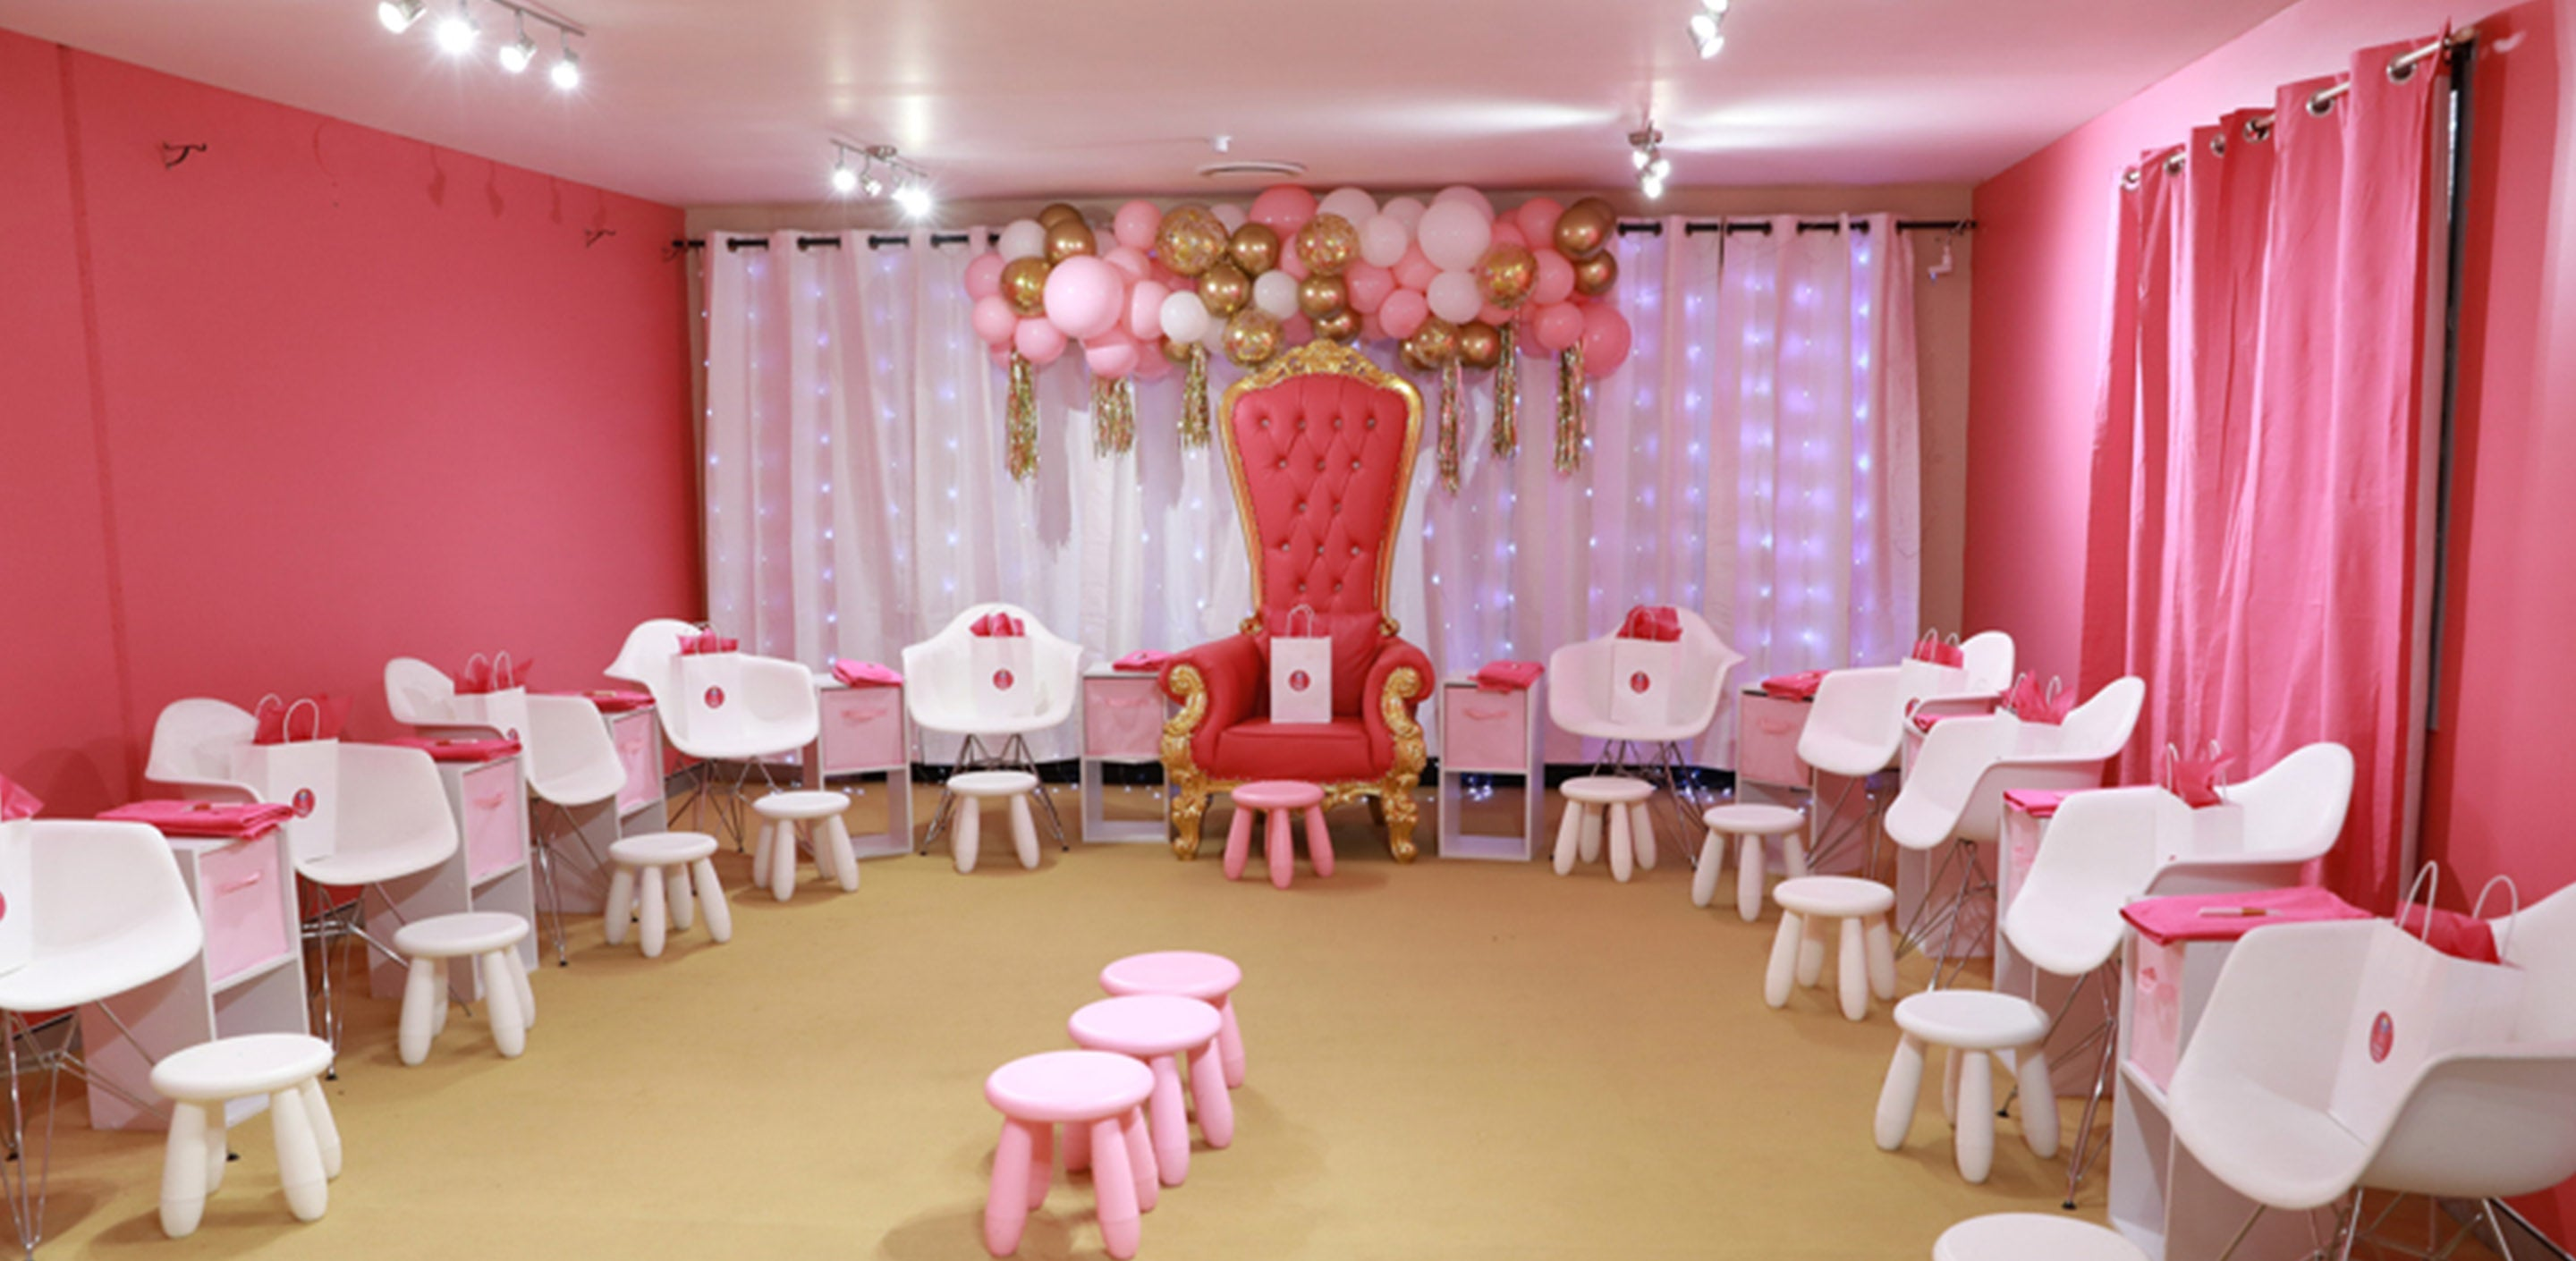 The Pamper Room where pamper parties and makeover magic happens - gold coast day spa for kids